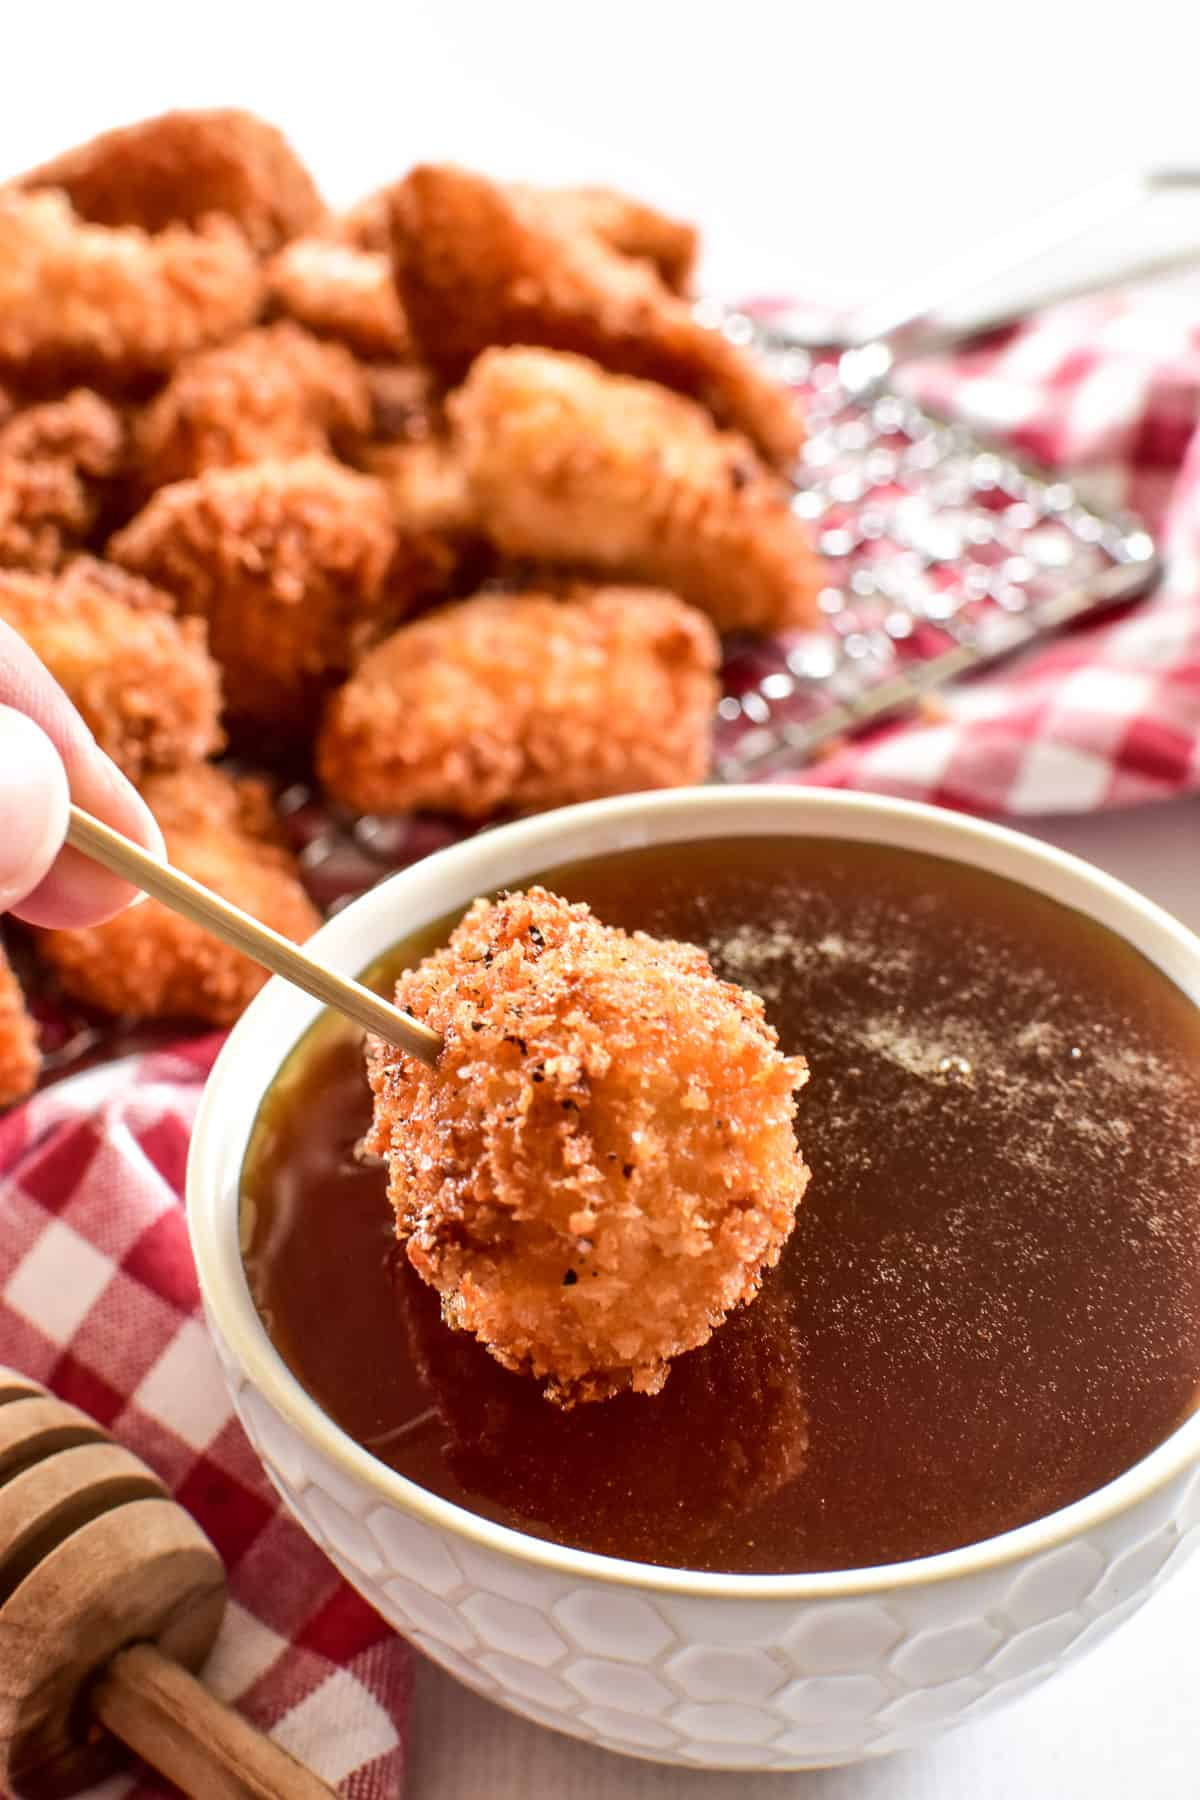 Crispy Chicken Nugget being dipped into Hot Honey